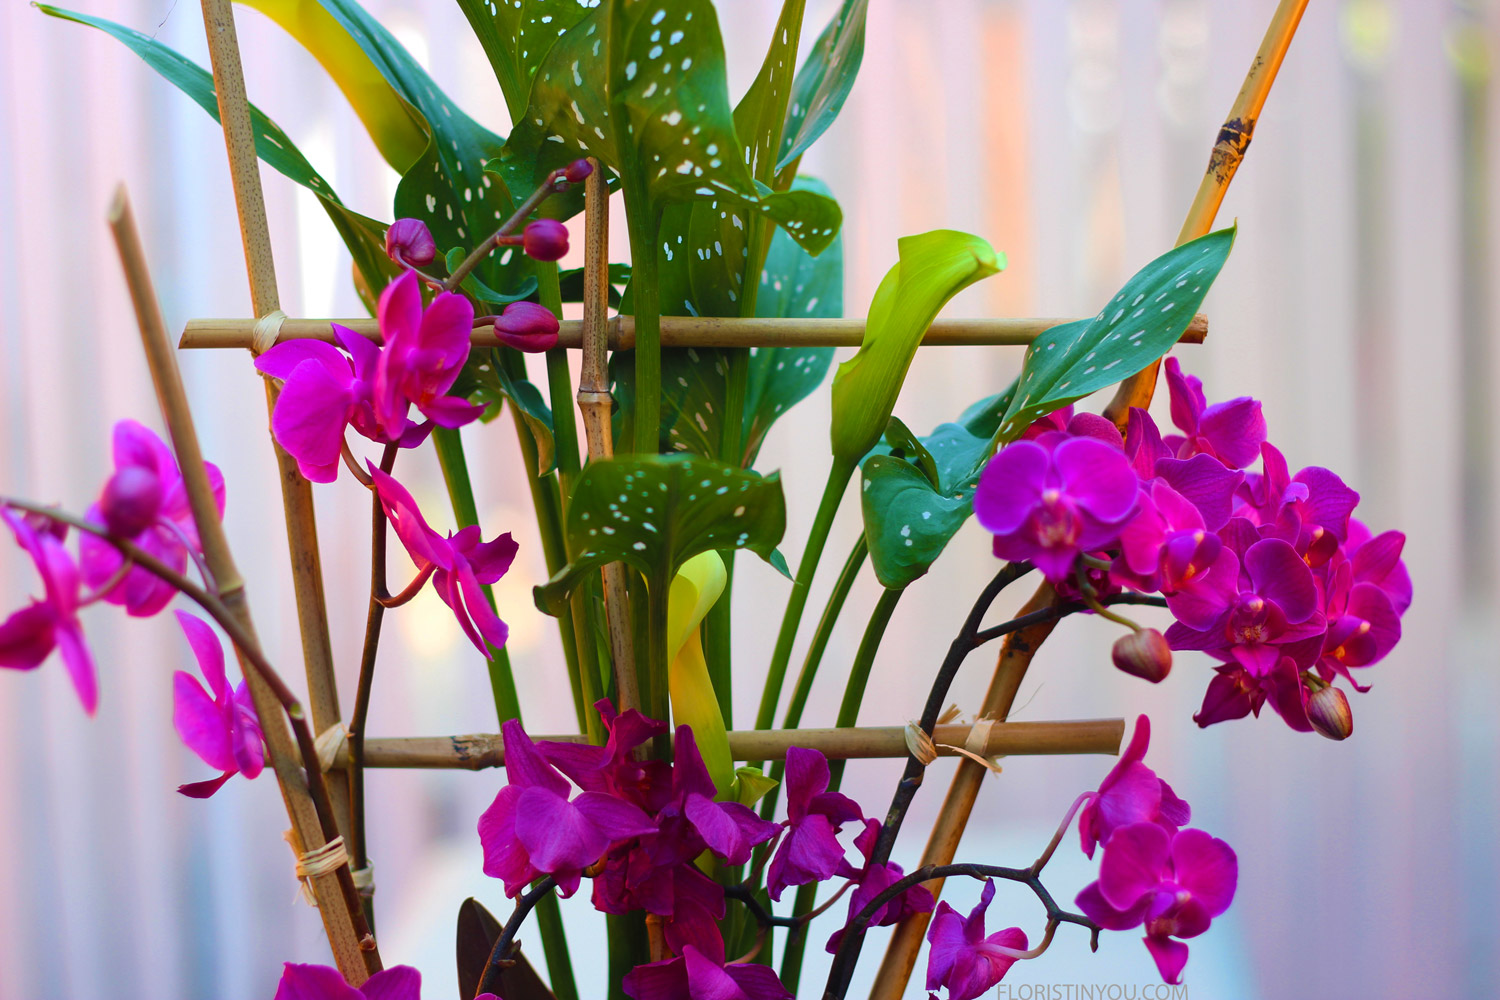 Cut bamboo pieces to support all stems. Tie each orchid stem to bamboo with raffia. Double knot. Trim close.